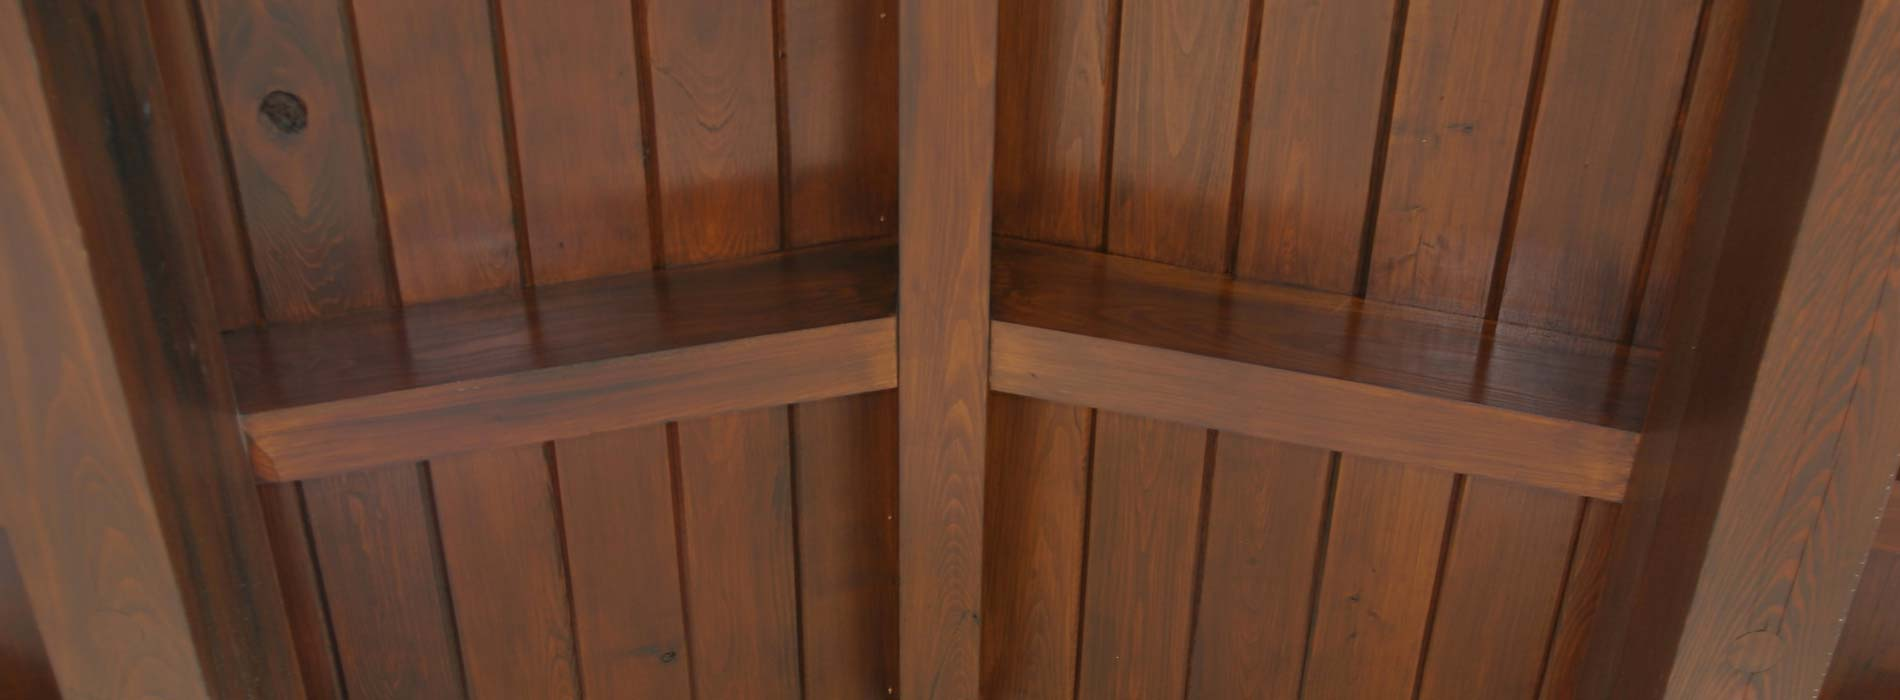 Exterior Millwork | Heavy Timber | Trim Carpentry